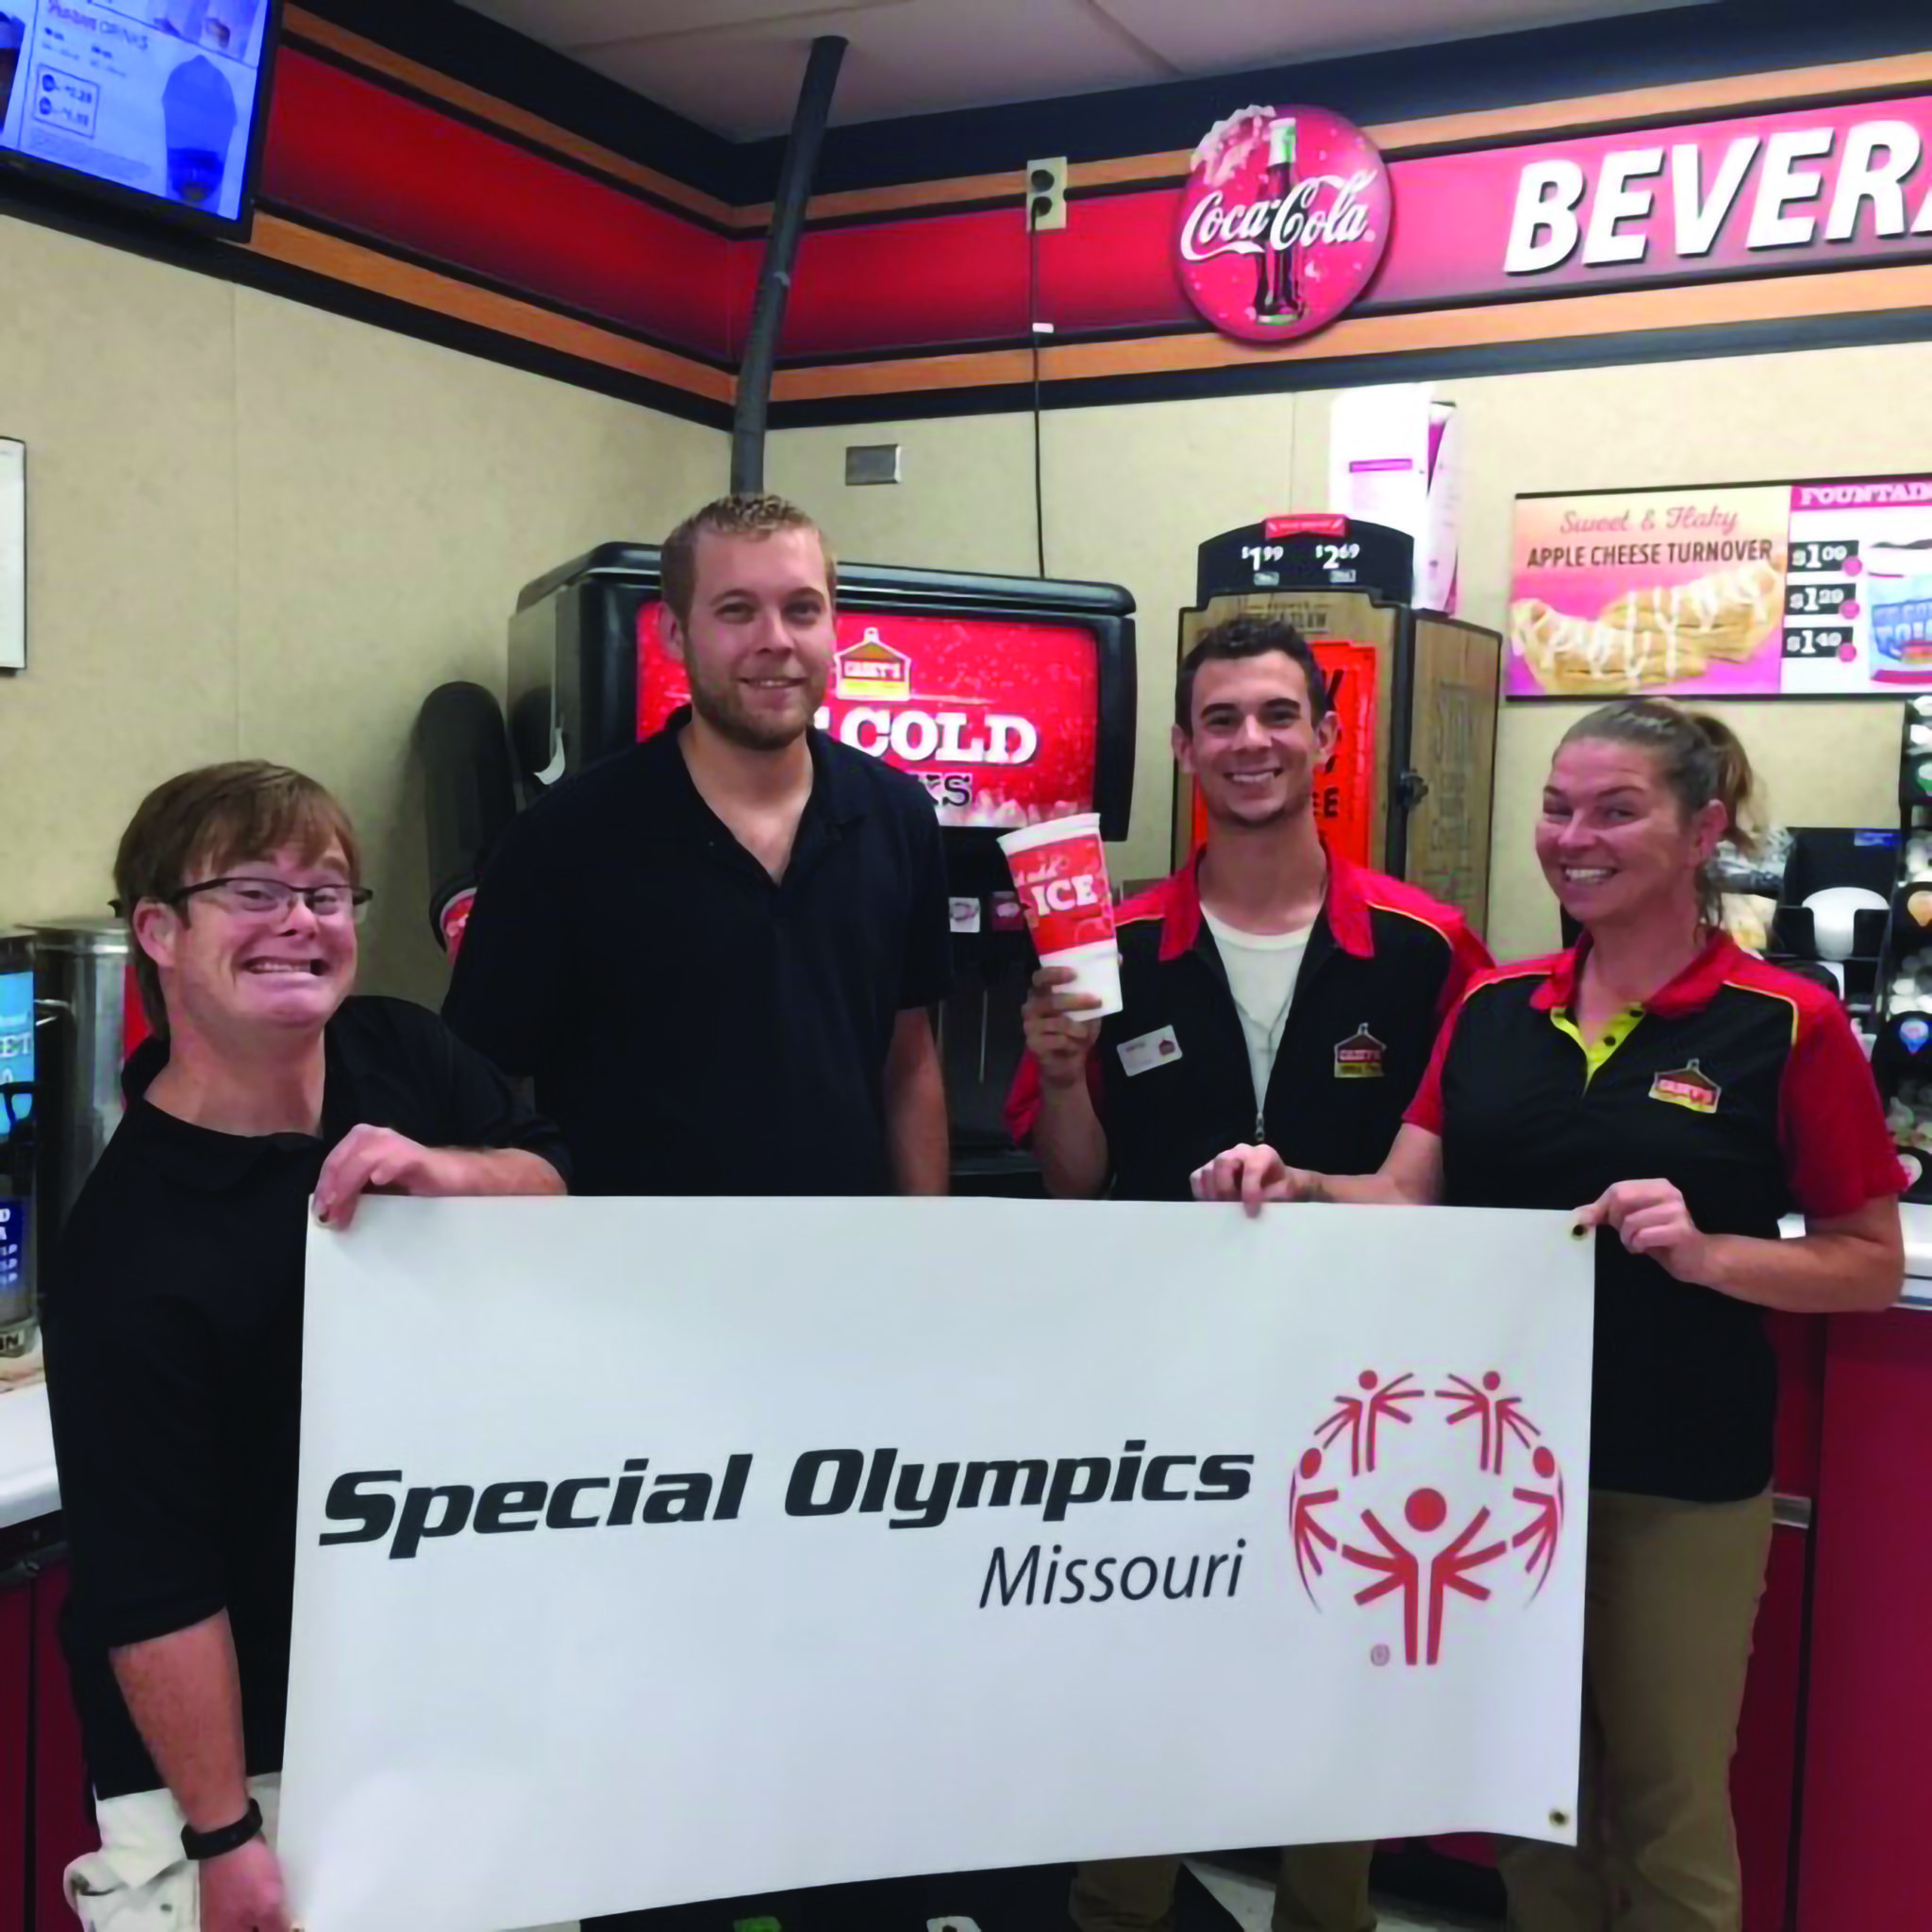 An athlete poses for a photo with Casey's General Store employees while holding a SOMO banner